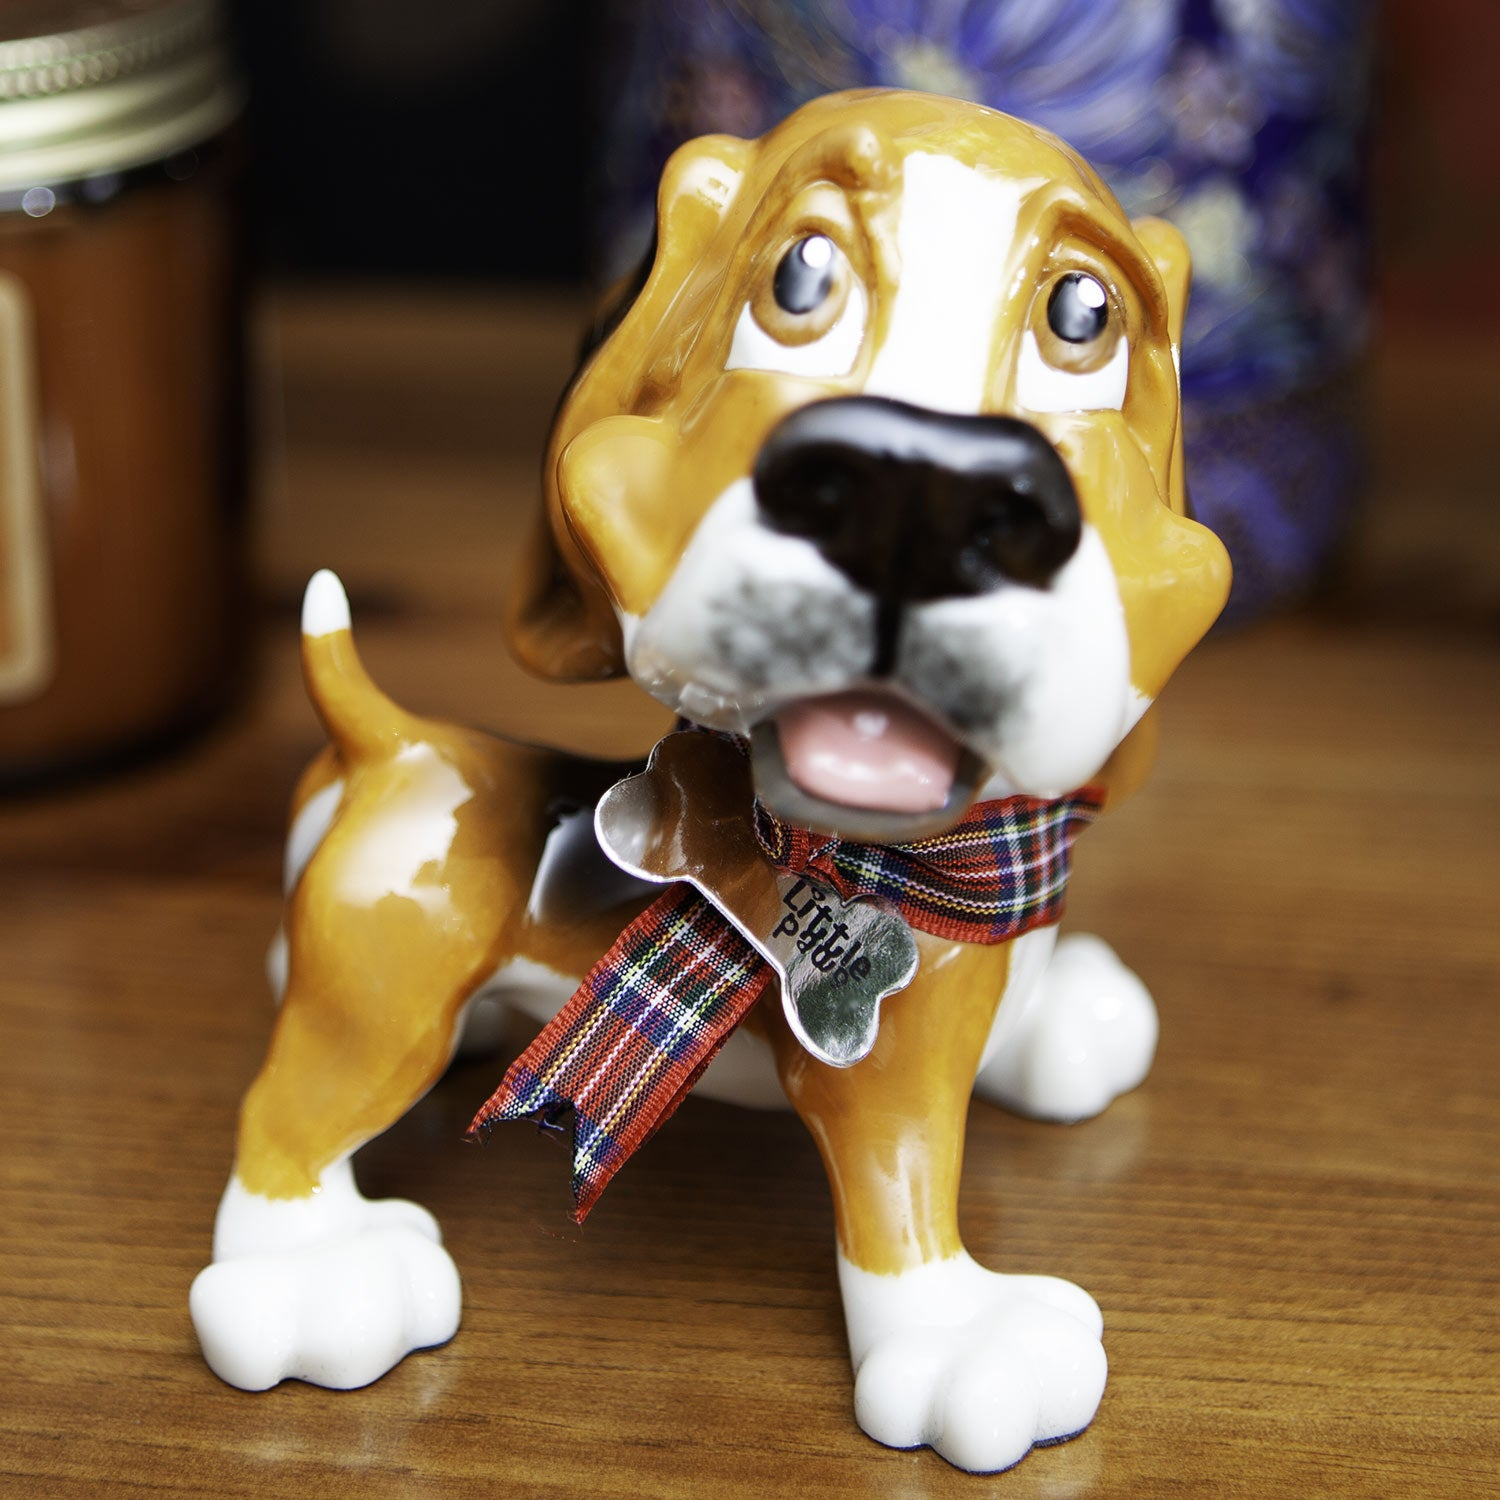 Dog Lover Gifts available at Dog Krazy Gifts - Baxter The Beagle - part of the Little Paws range available from DogKrazyGifts.co.uk